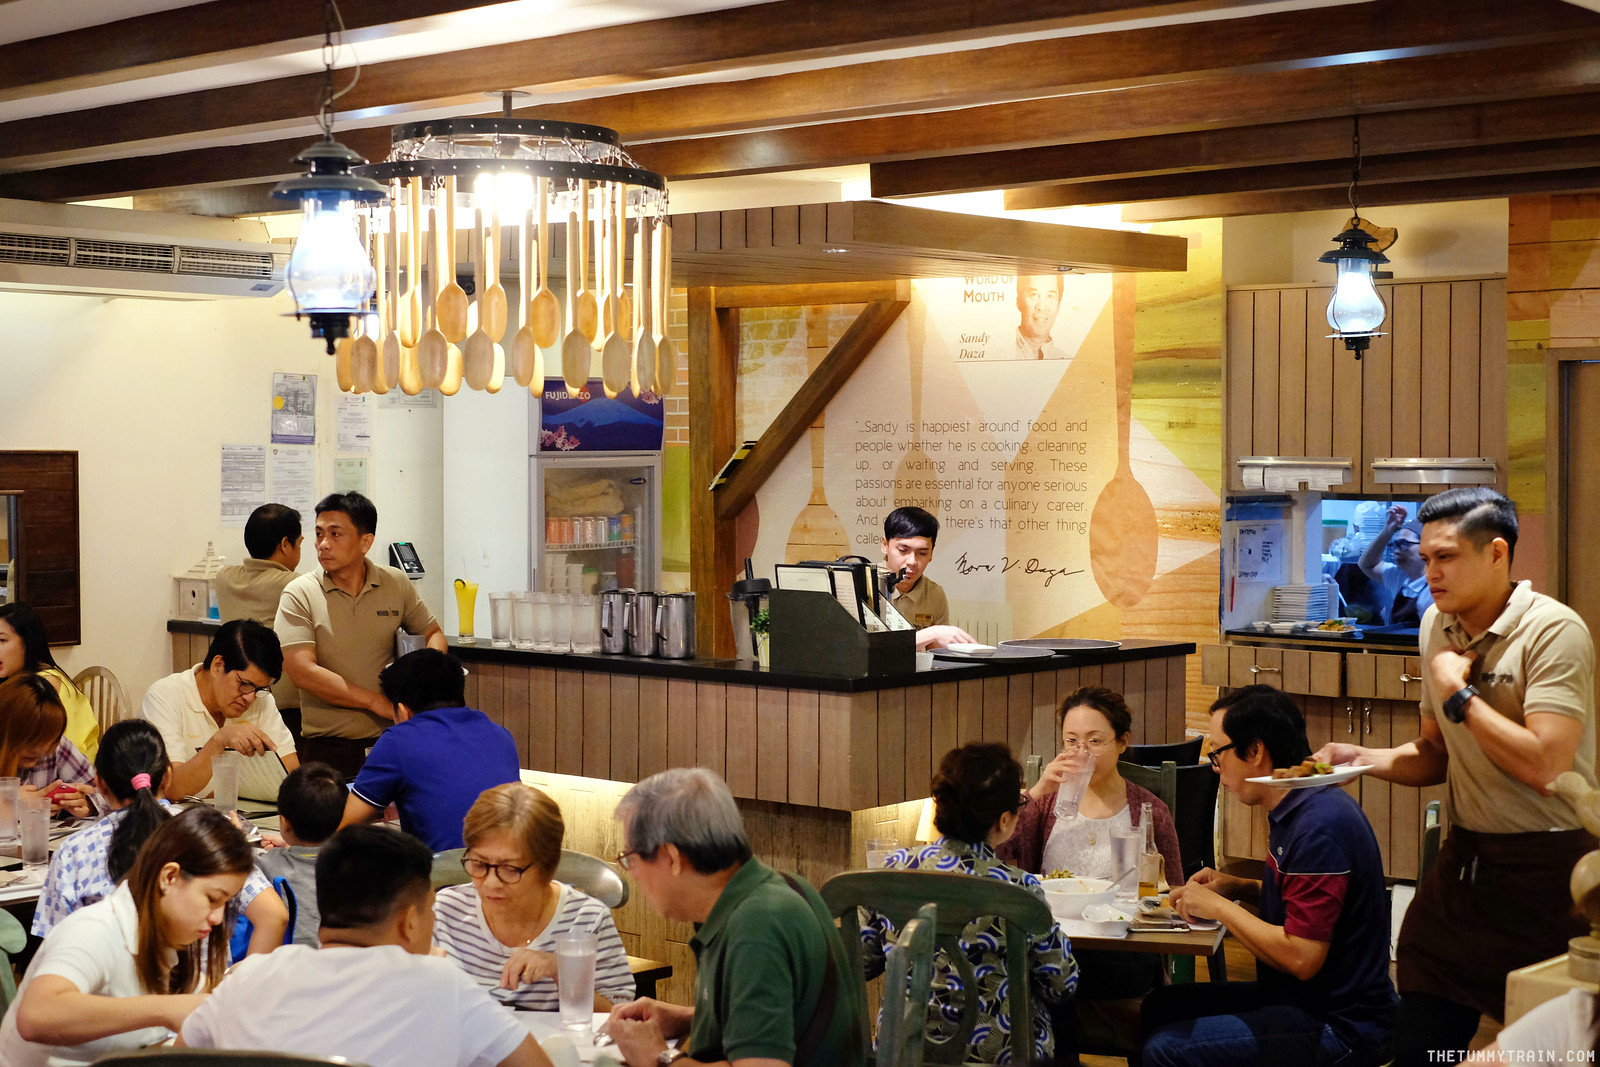 32678460313 4a6ad8c98d h - Have an affordable home-cooked Pinoy meal at Wooden Spoon